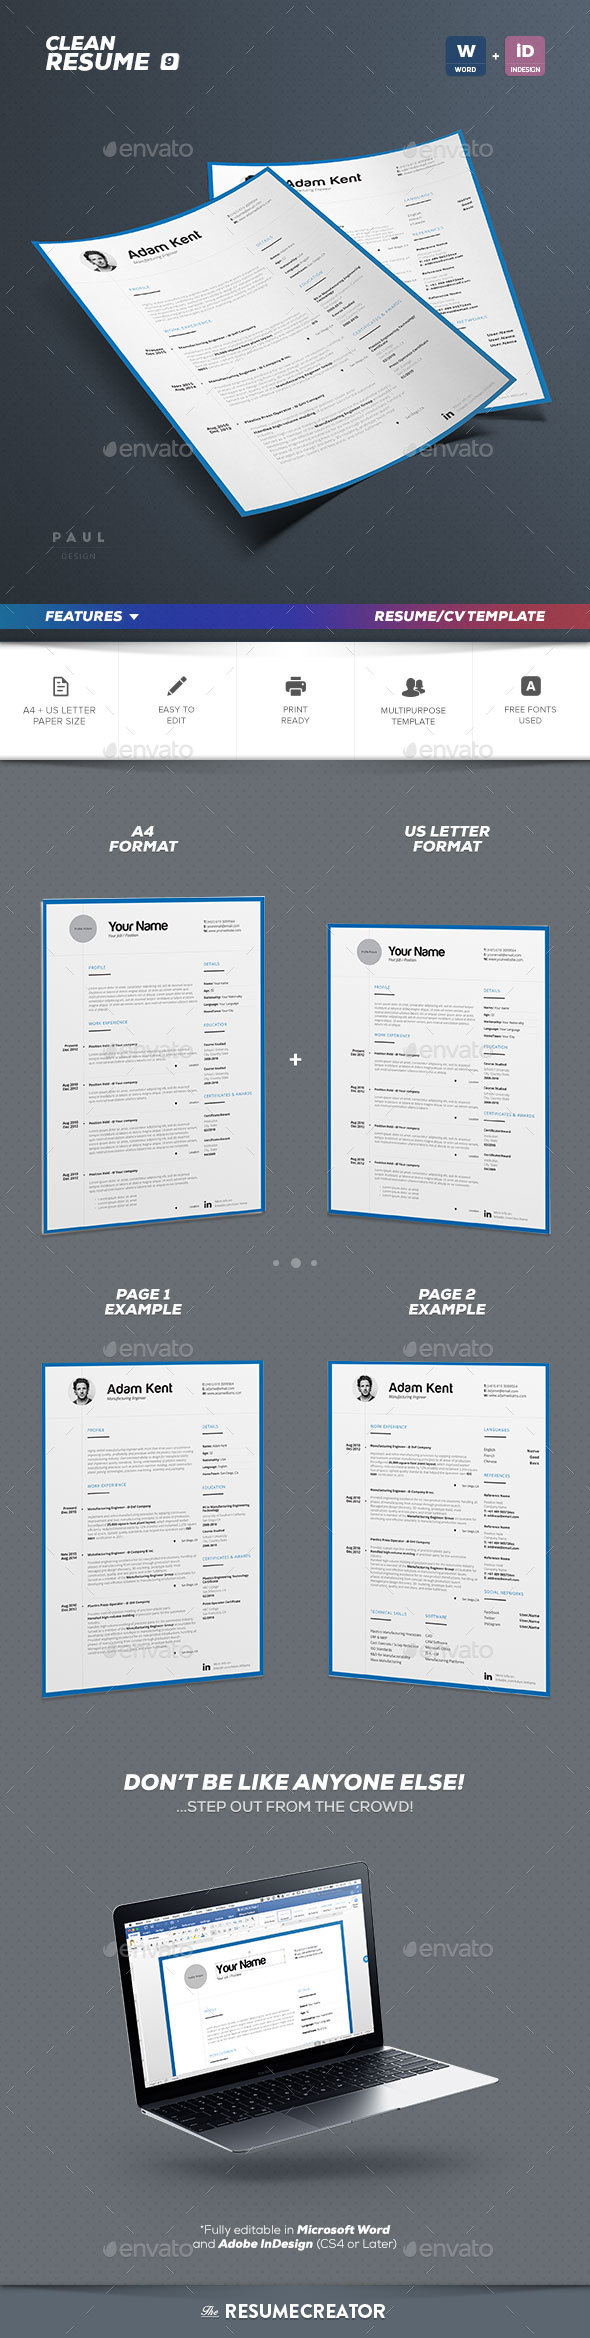 clean 2 pages resume vol 9 by paolo6180 graphicriver